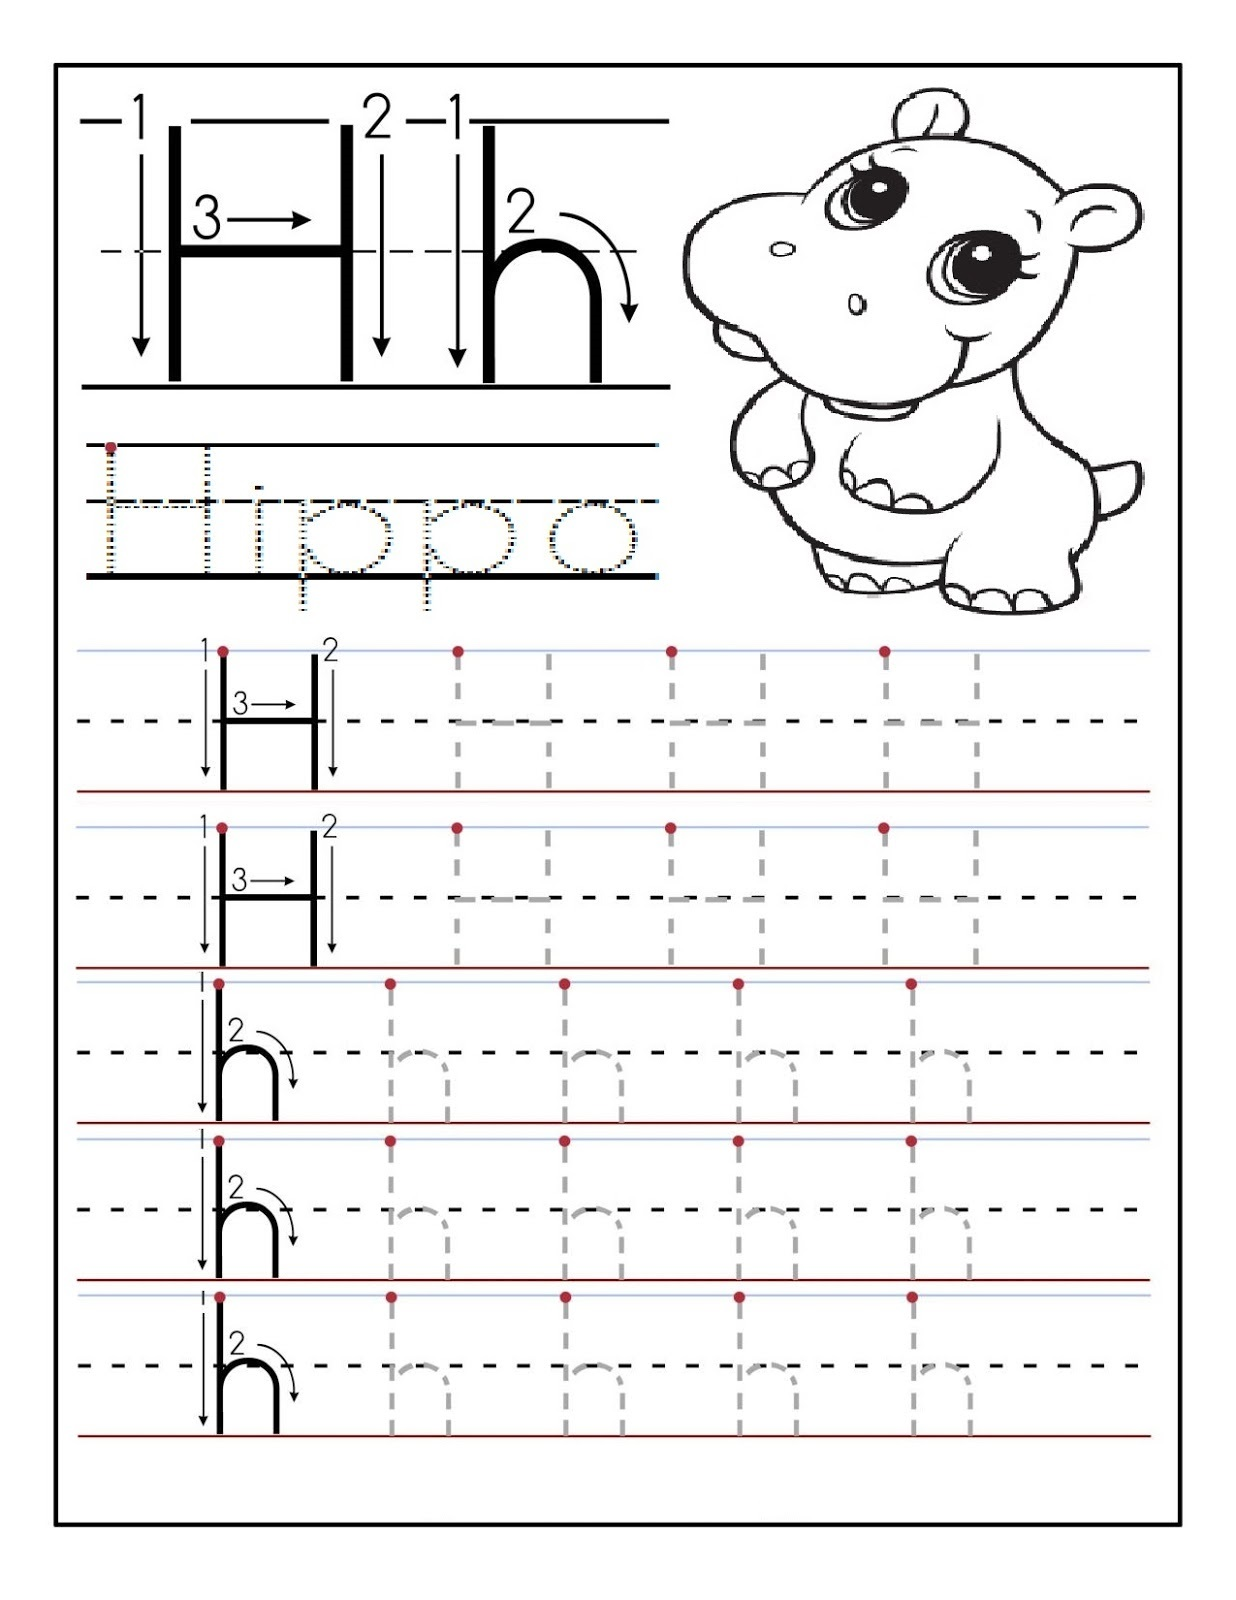 worksheet Letter I Worksheets For Preschool letter h worksheets for preschool and kindergarten printable tracing preschoolers